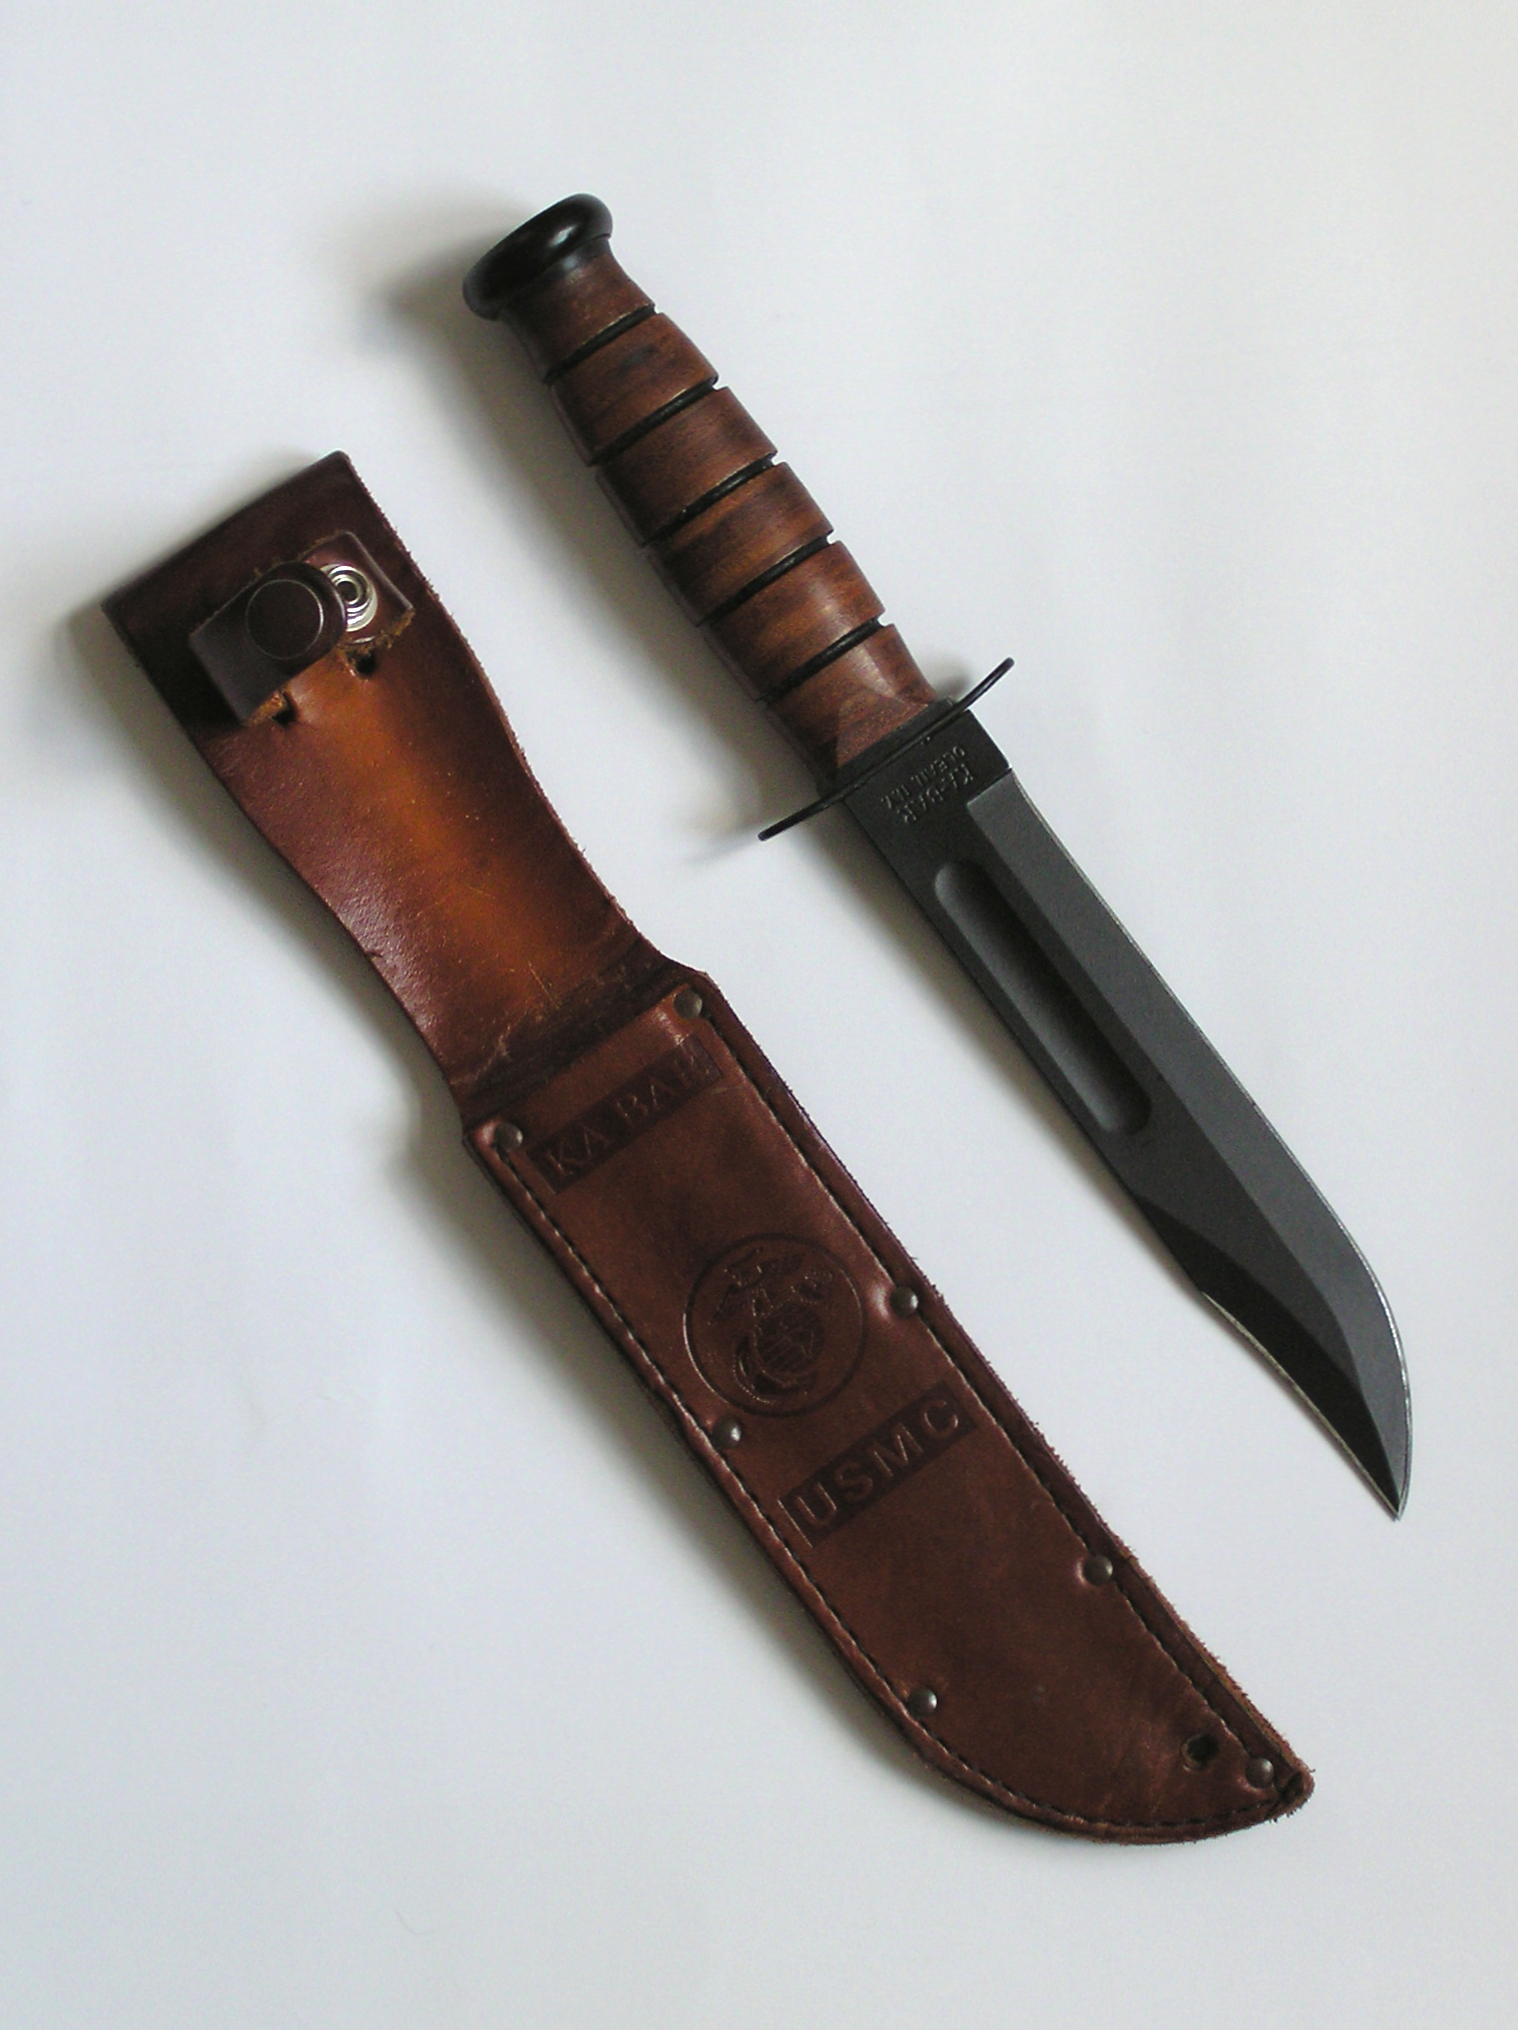 KA-BAR Combat Knife